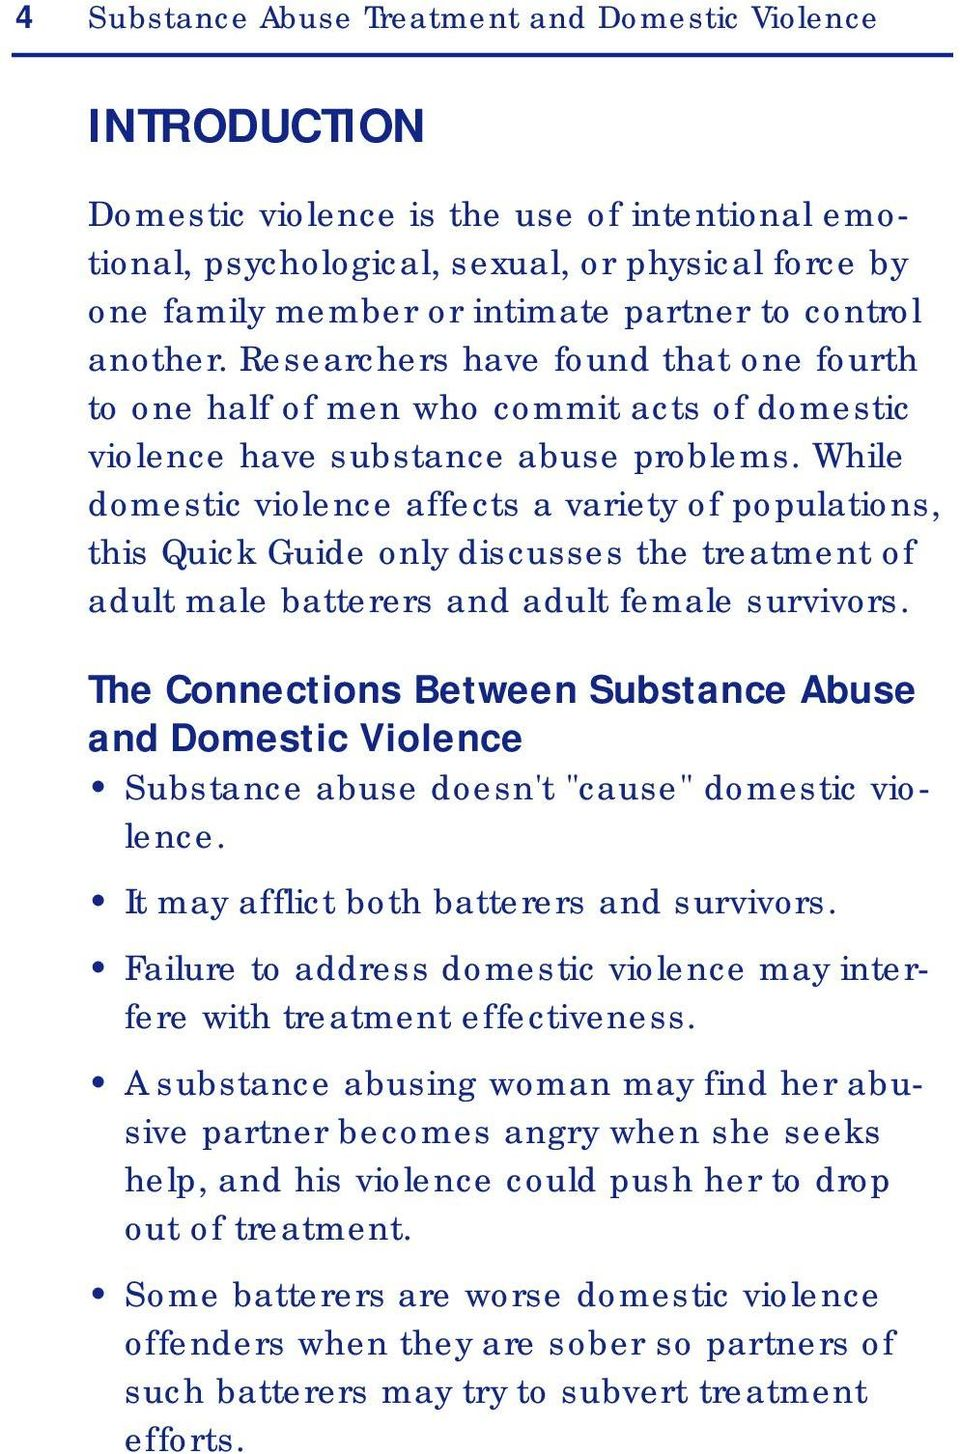 While domestic violence affects a variety of populations, this Quick Guide only discusses the treatment of adult male batterers and adult female survivors.